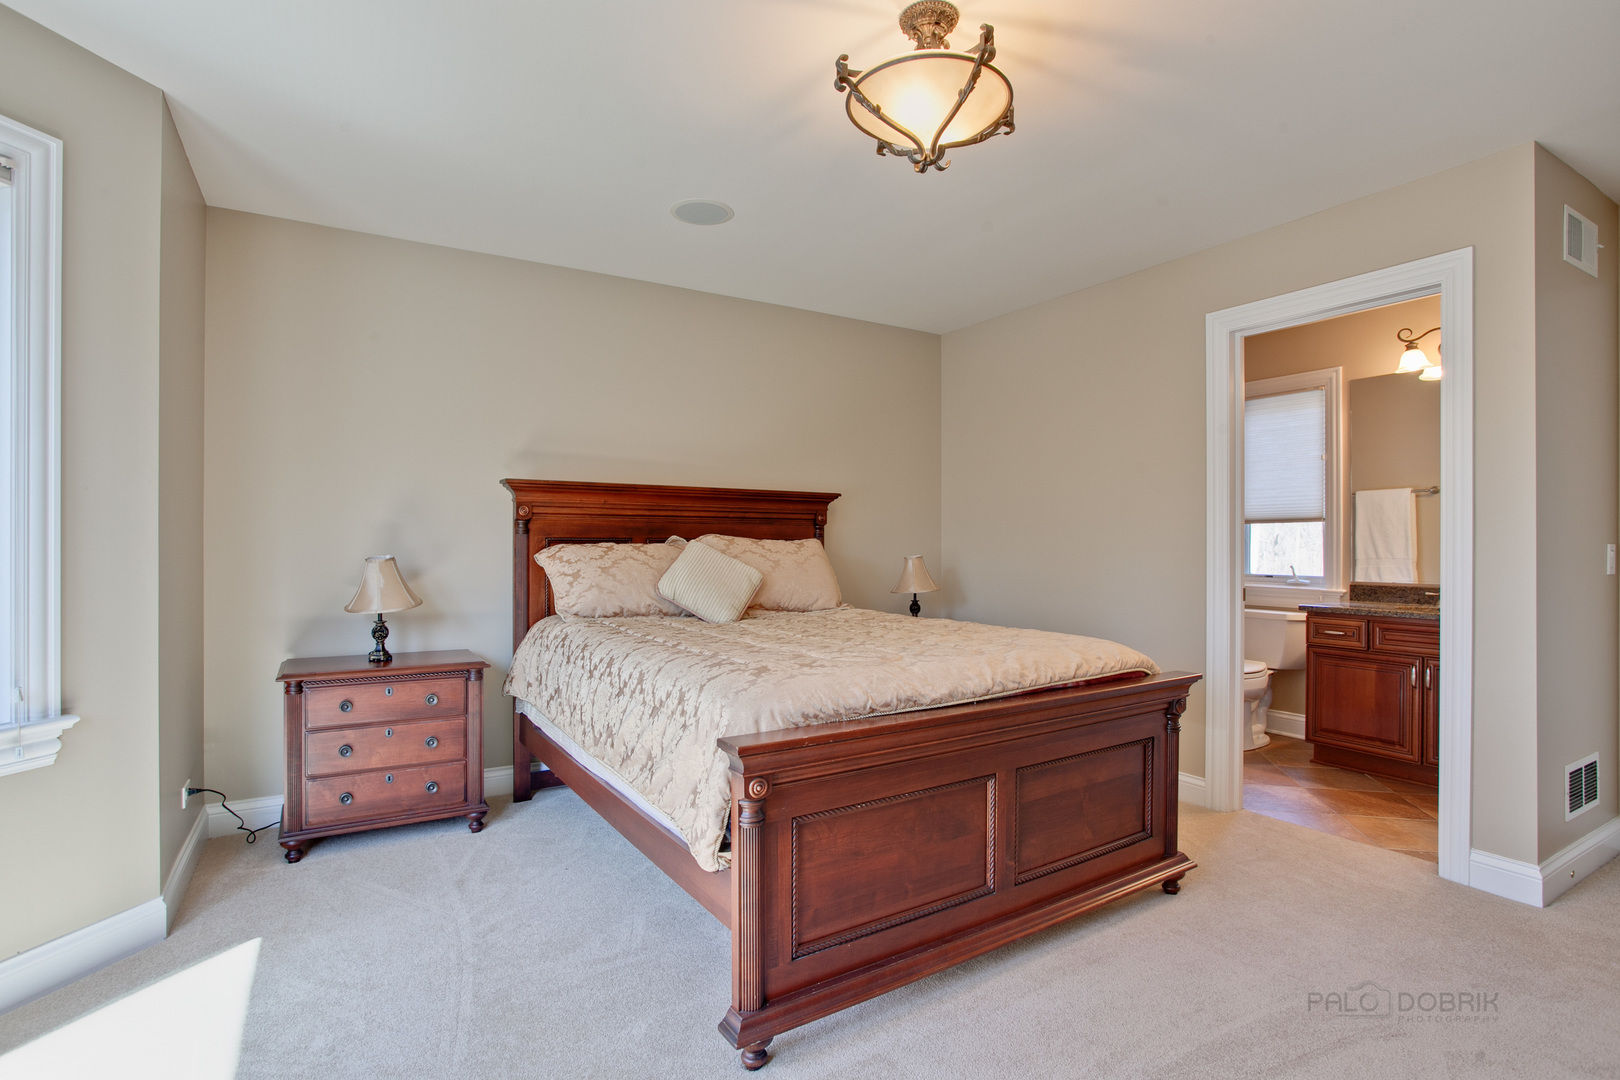 christian singles in prairie grove 4010 carlisle drive, prairie grove, il - contact dickerson & nieman about this single family home listing in timberhill prairie grove schools in mc henry county.